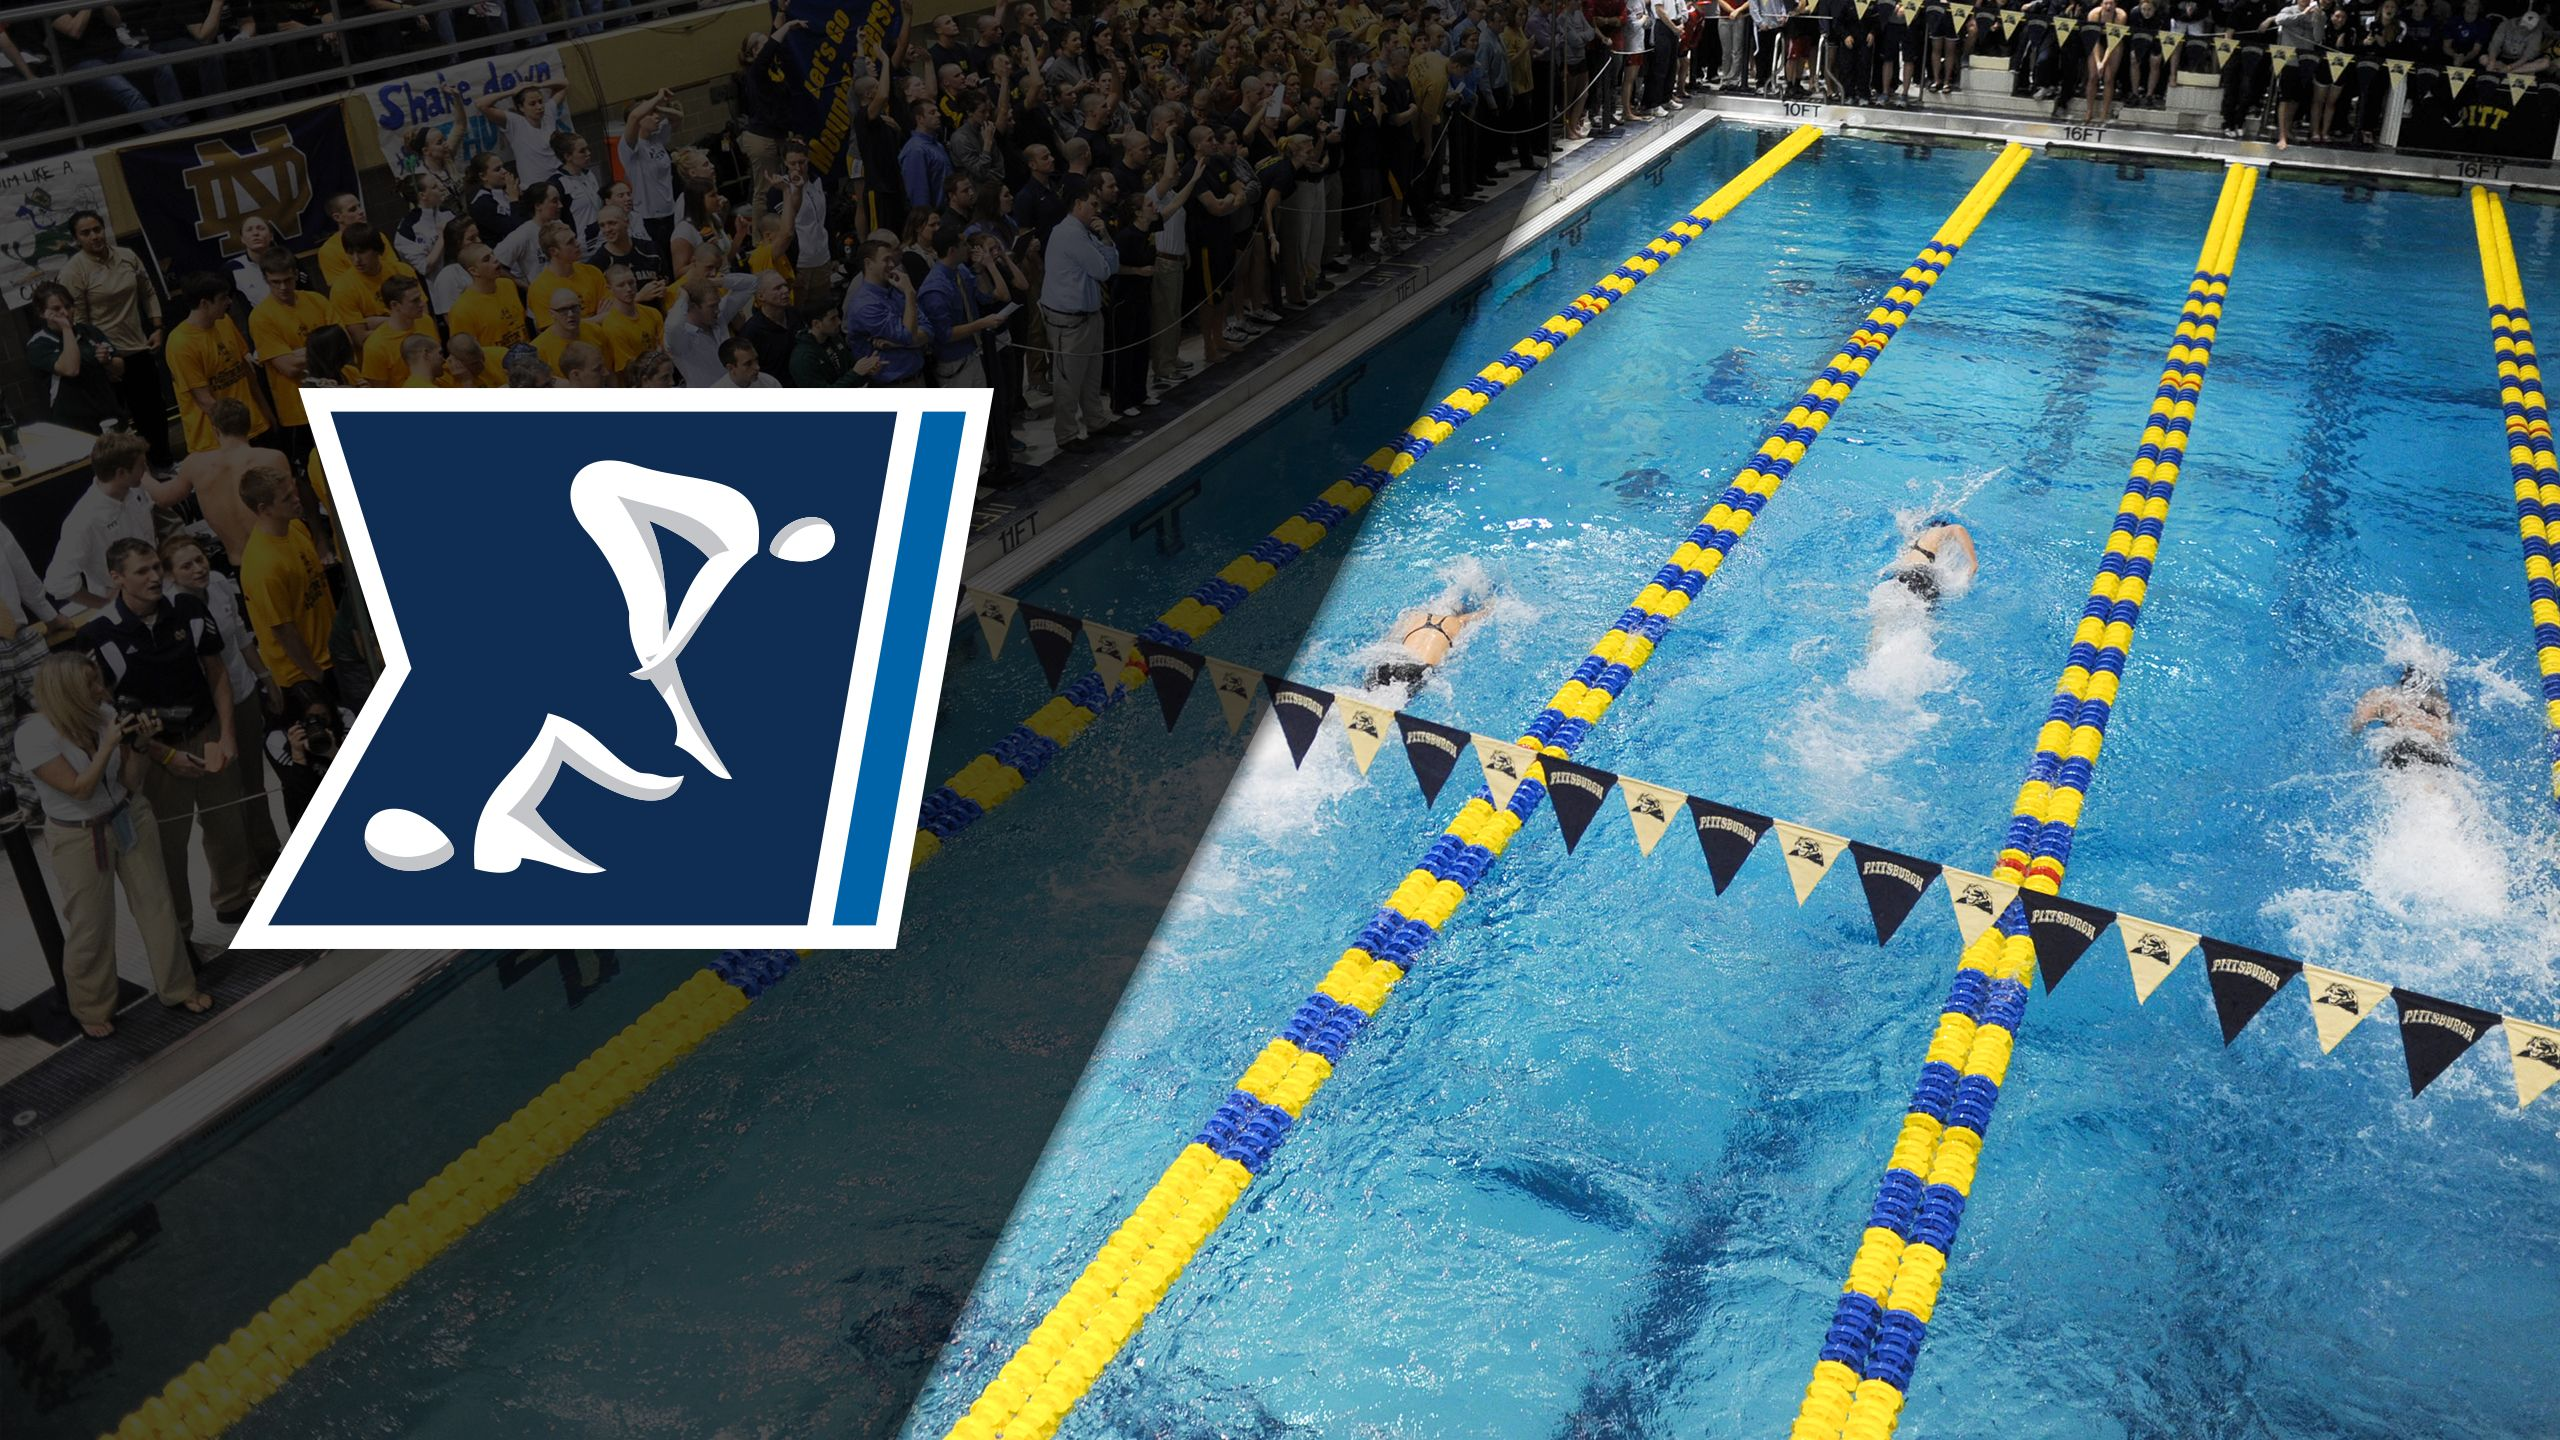 ACC Championship: Women's Swimming, Men's and Women's Diving